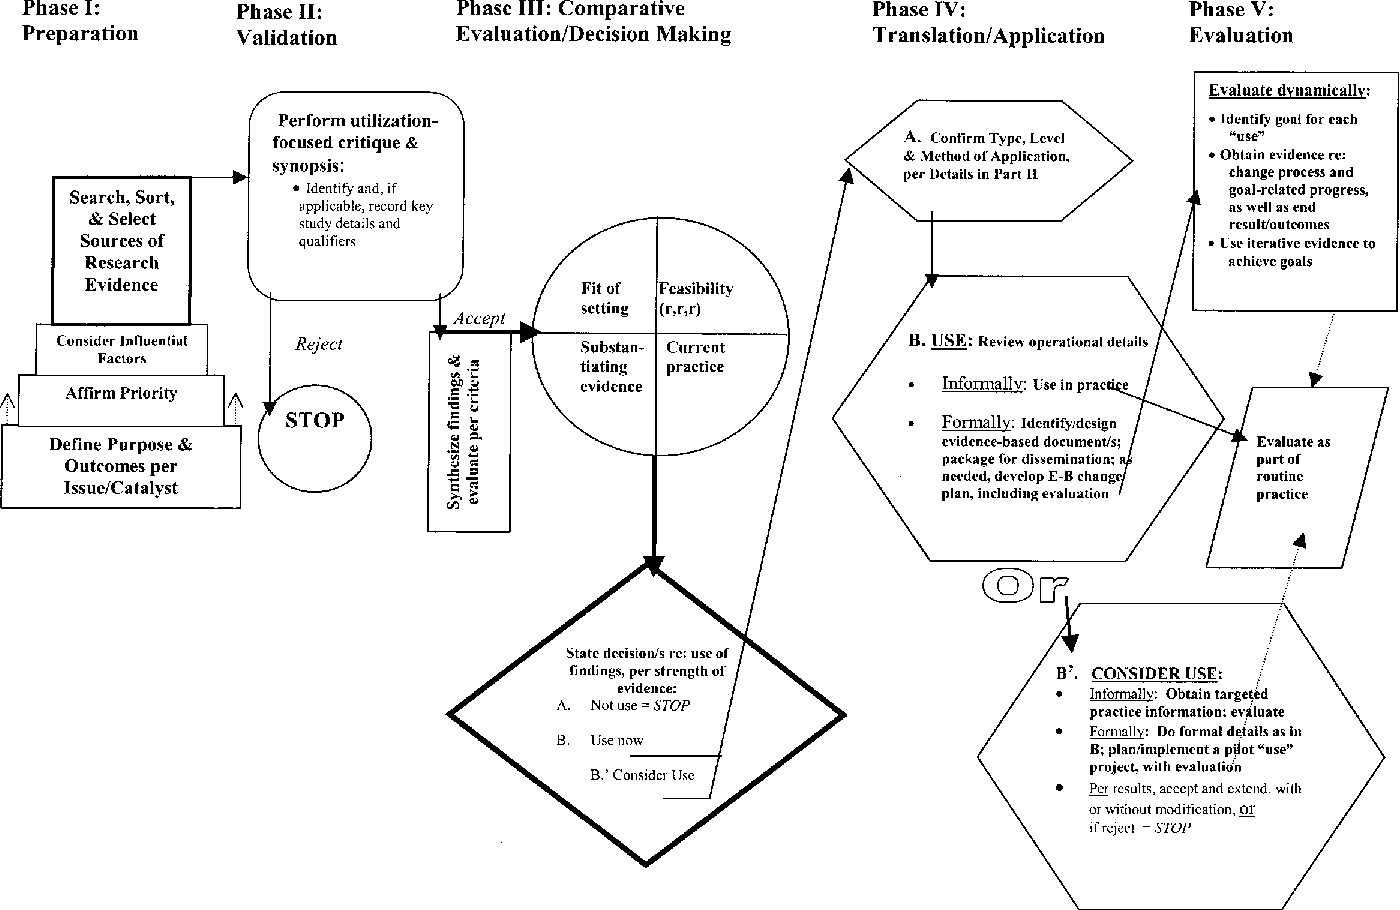 Updating the stetler model of research utilization